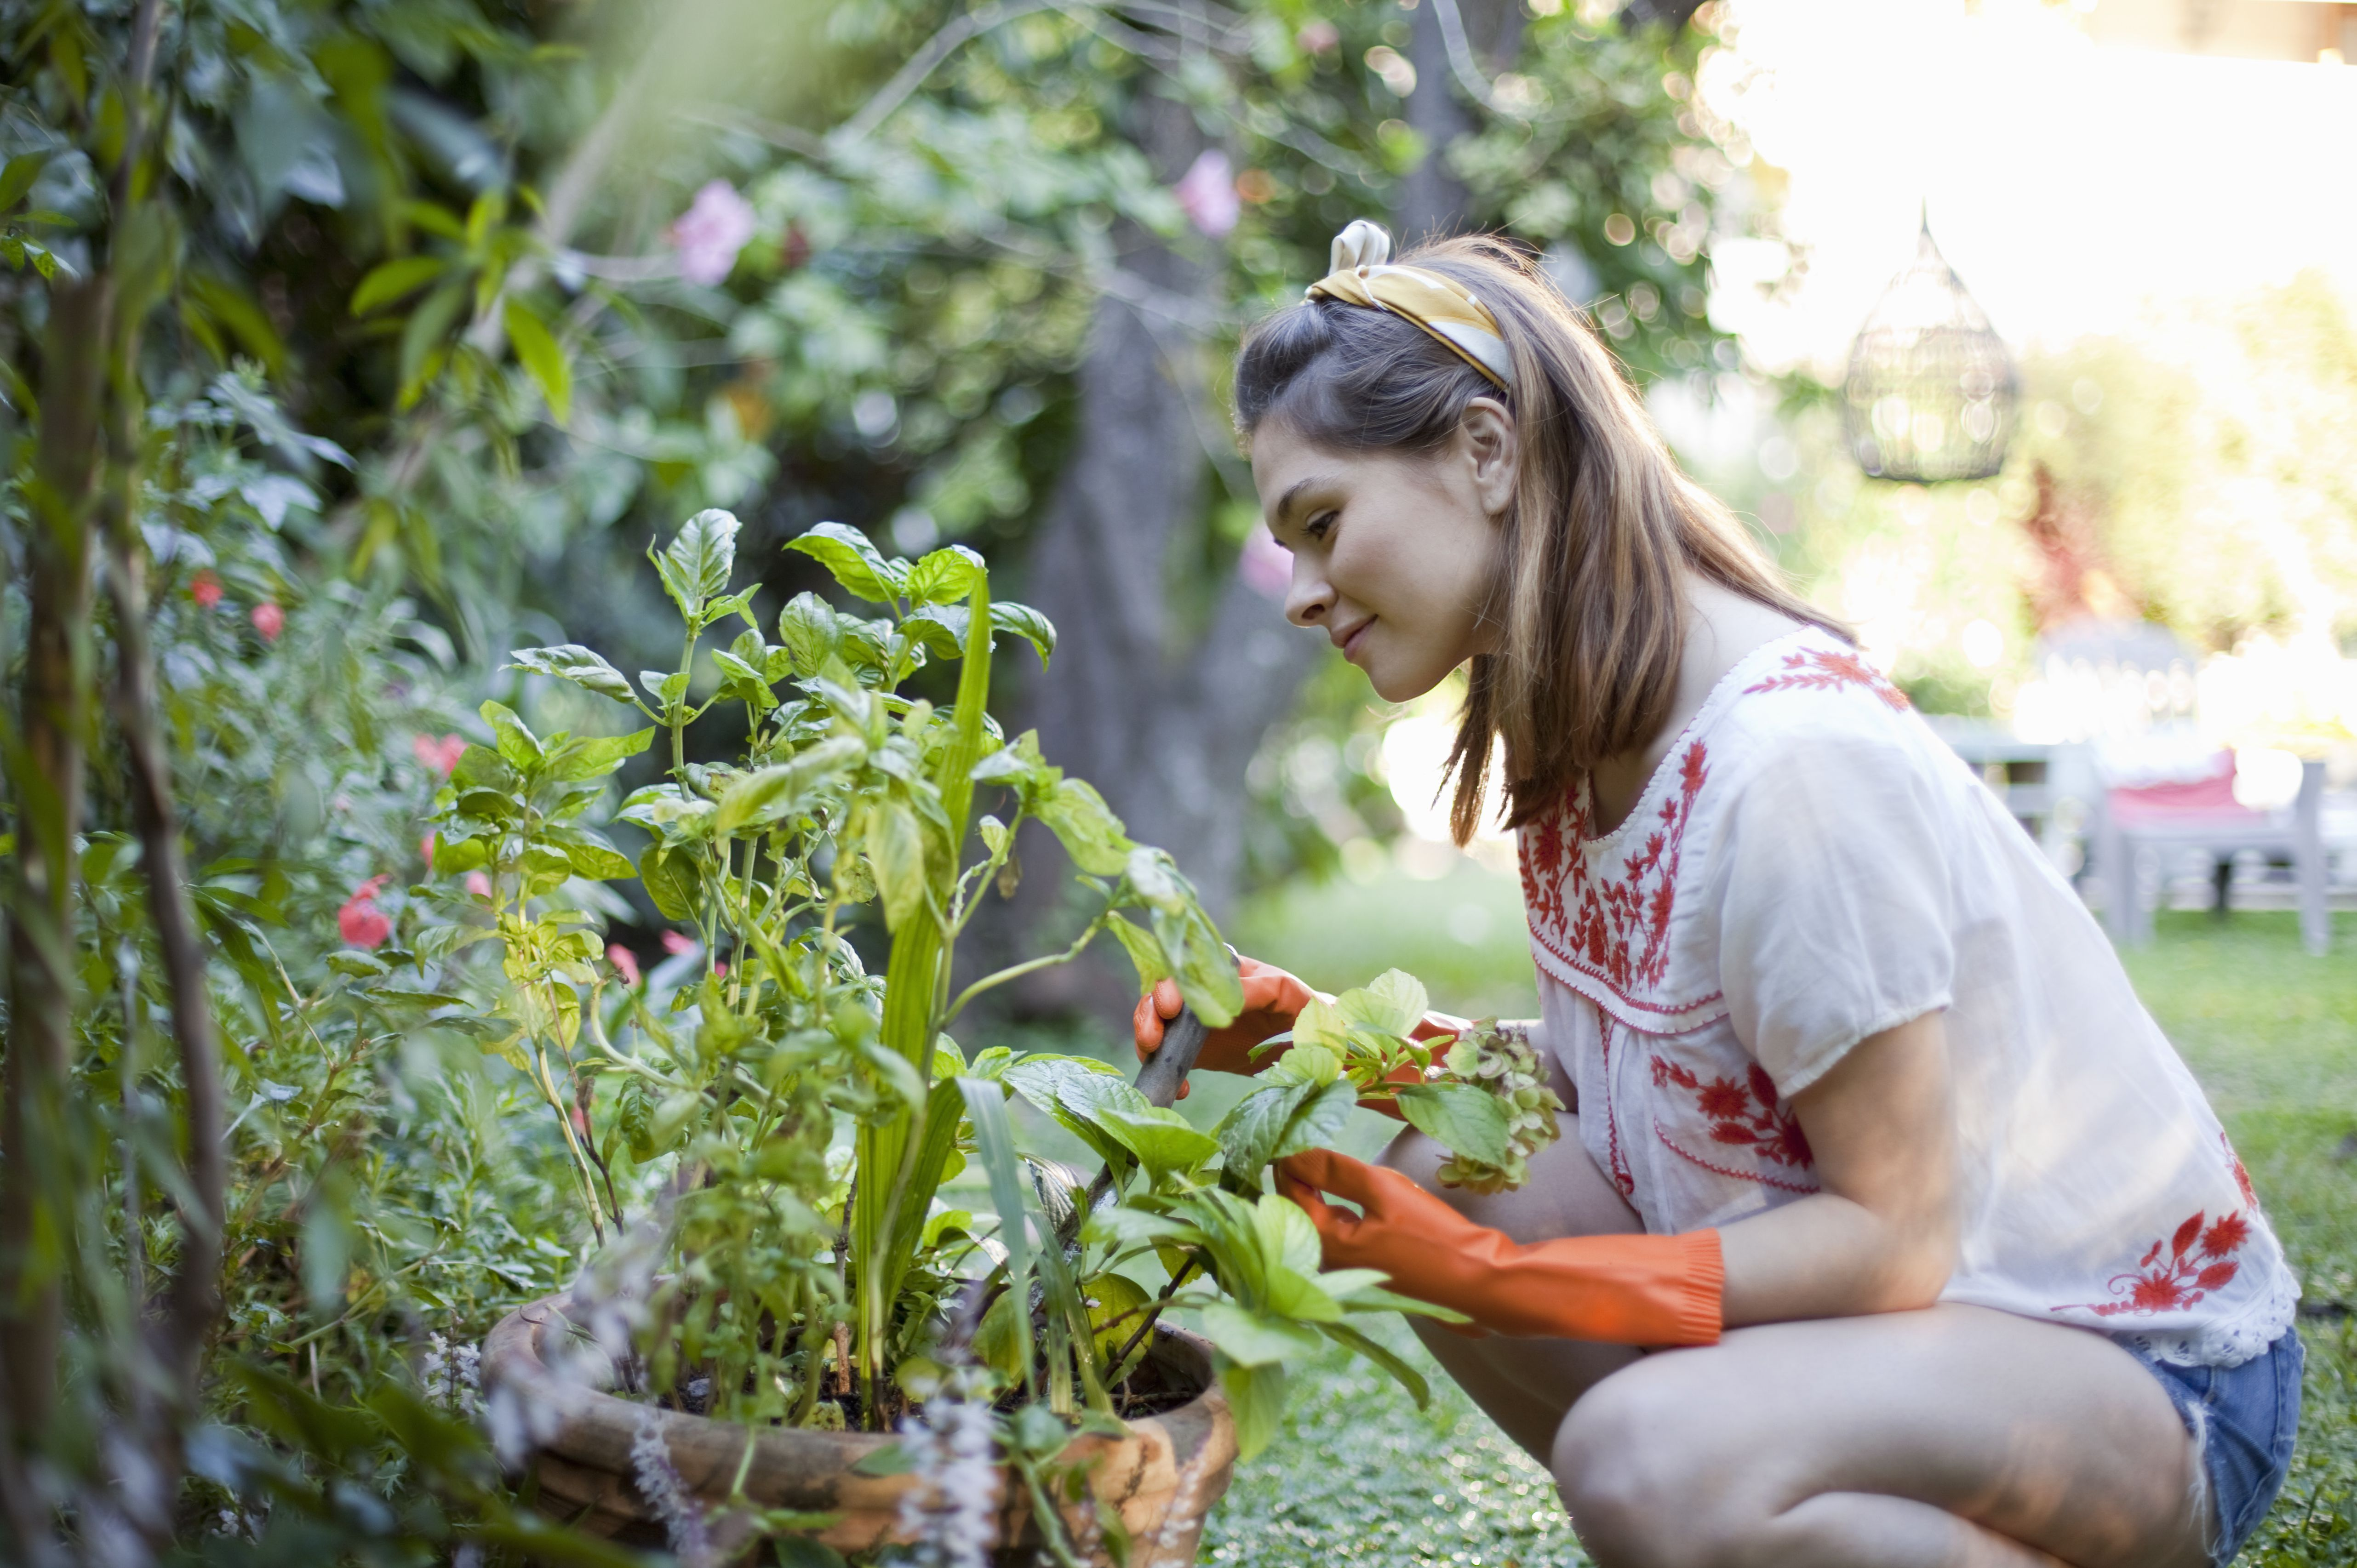 Garden Design Qualifications landscaping and garden skills for resumes and websites